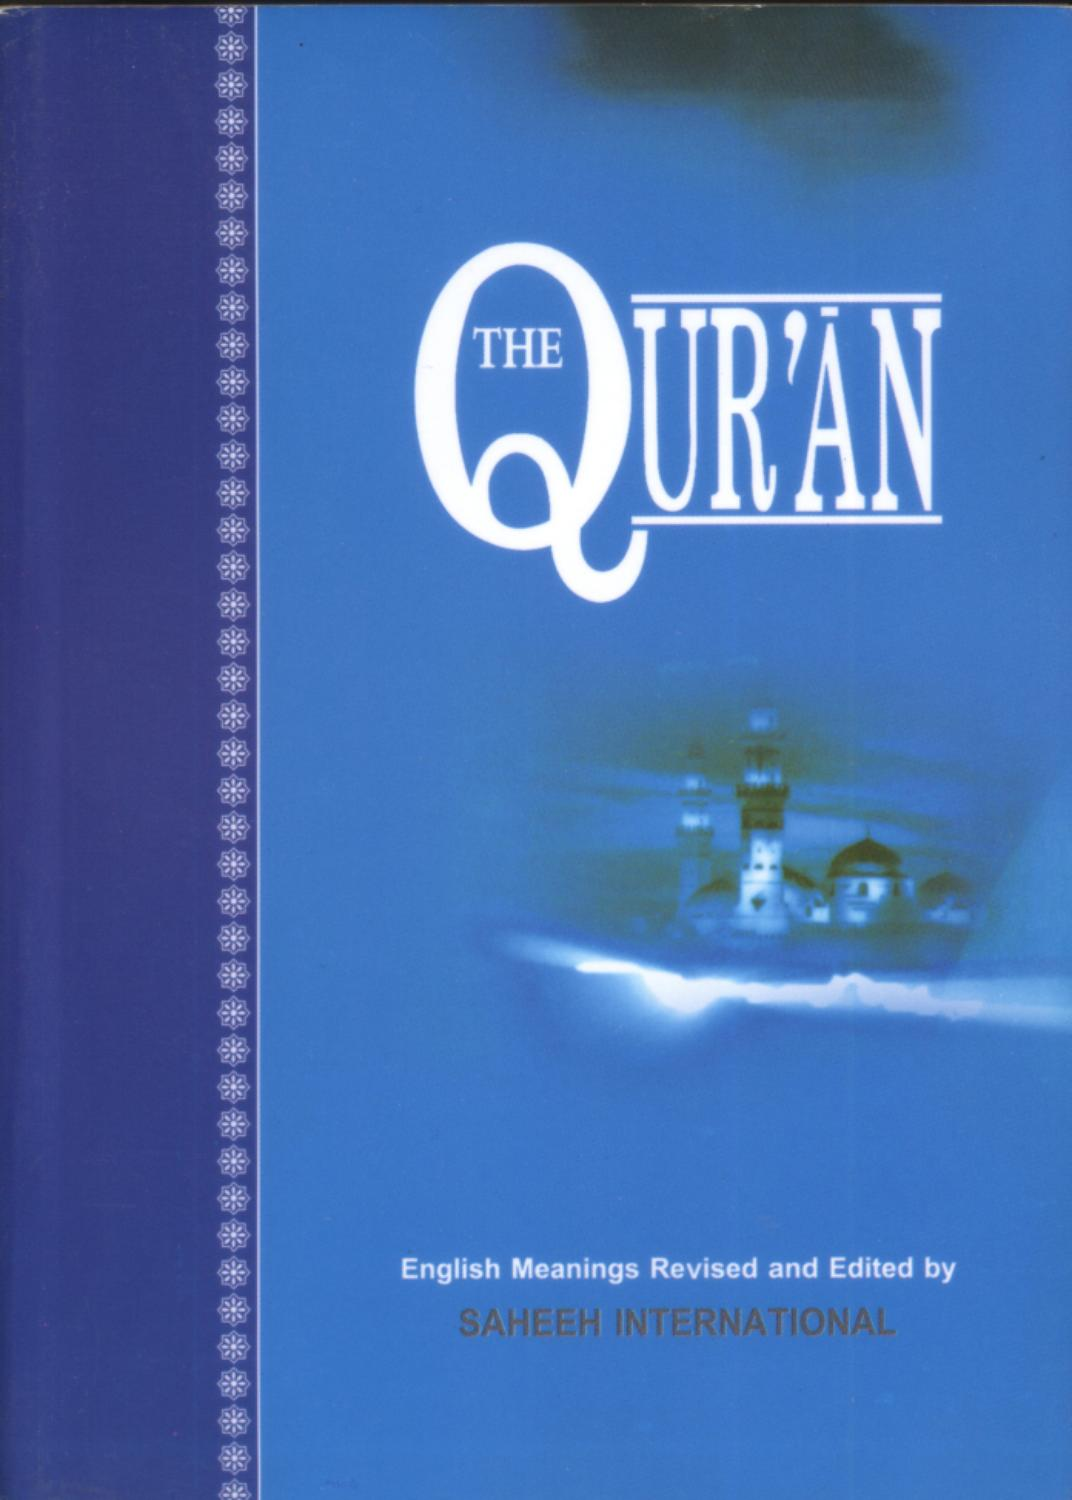 The Qur'an English Meanings Revised and Edited by SAHEEH